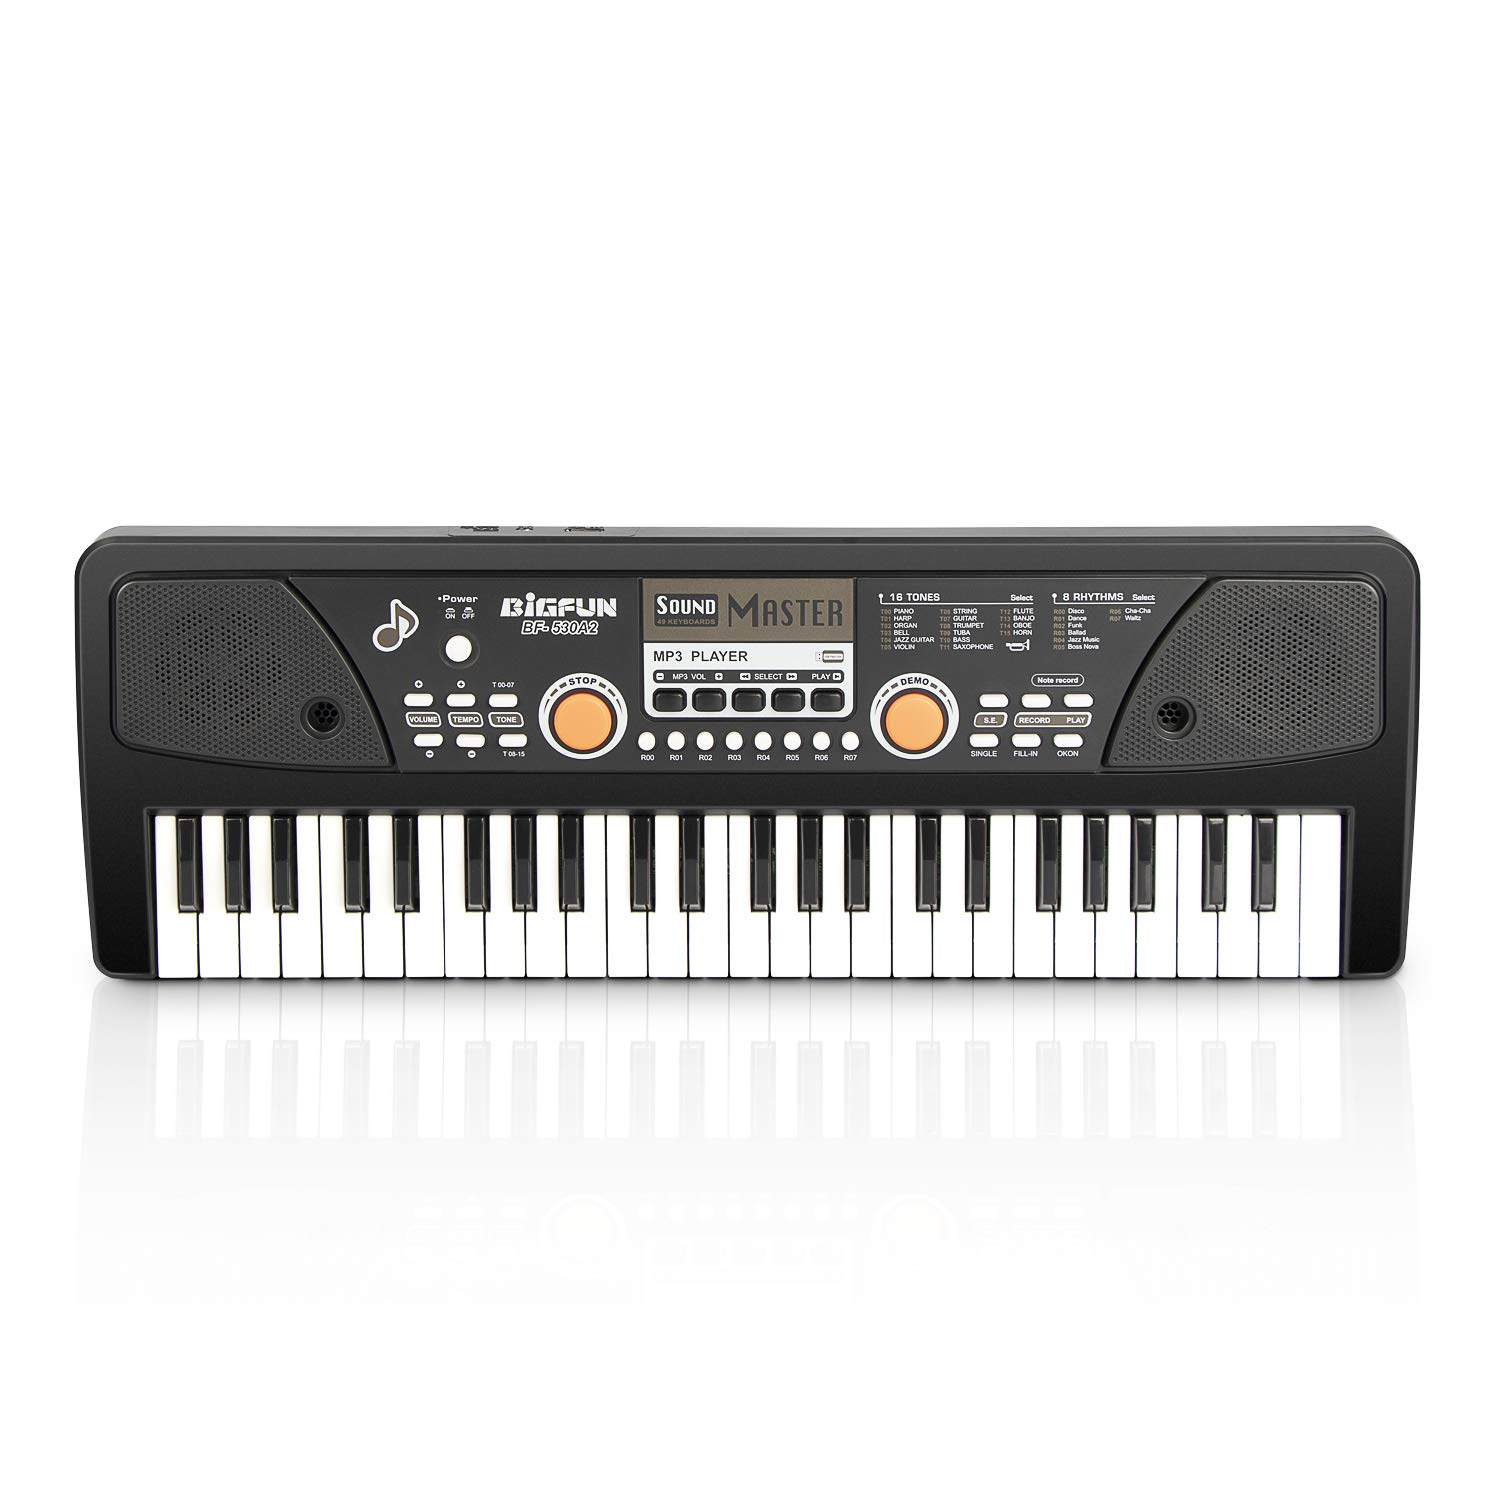 AIMEDYOU 49 Keys Piano Keyboard for Kids Multifunction Portable Piano Electronic Keyboard Music Instrument Birthday Xmas Day Gifts for Kids